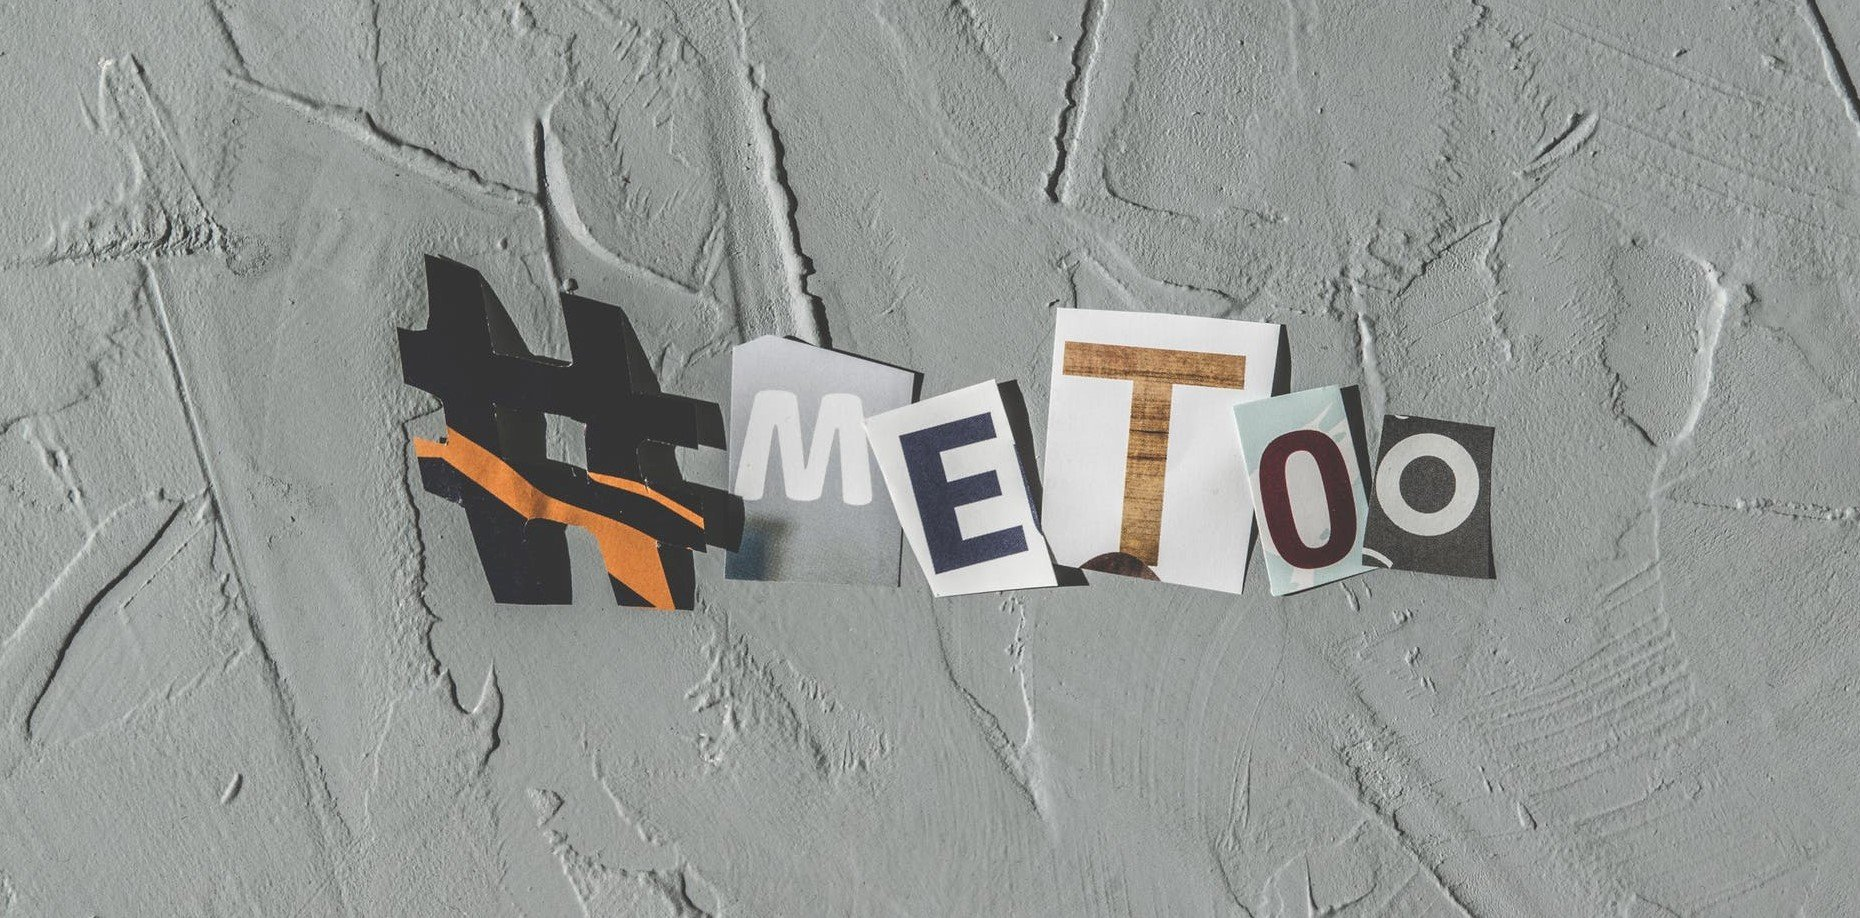 MeToo sexual harassment